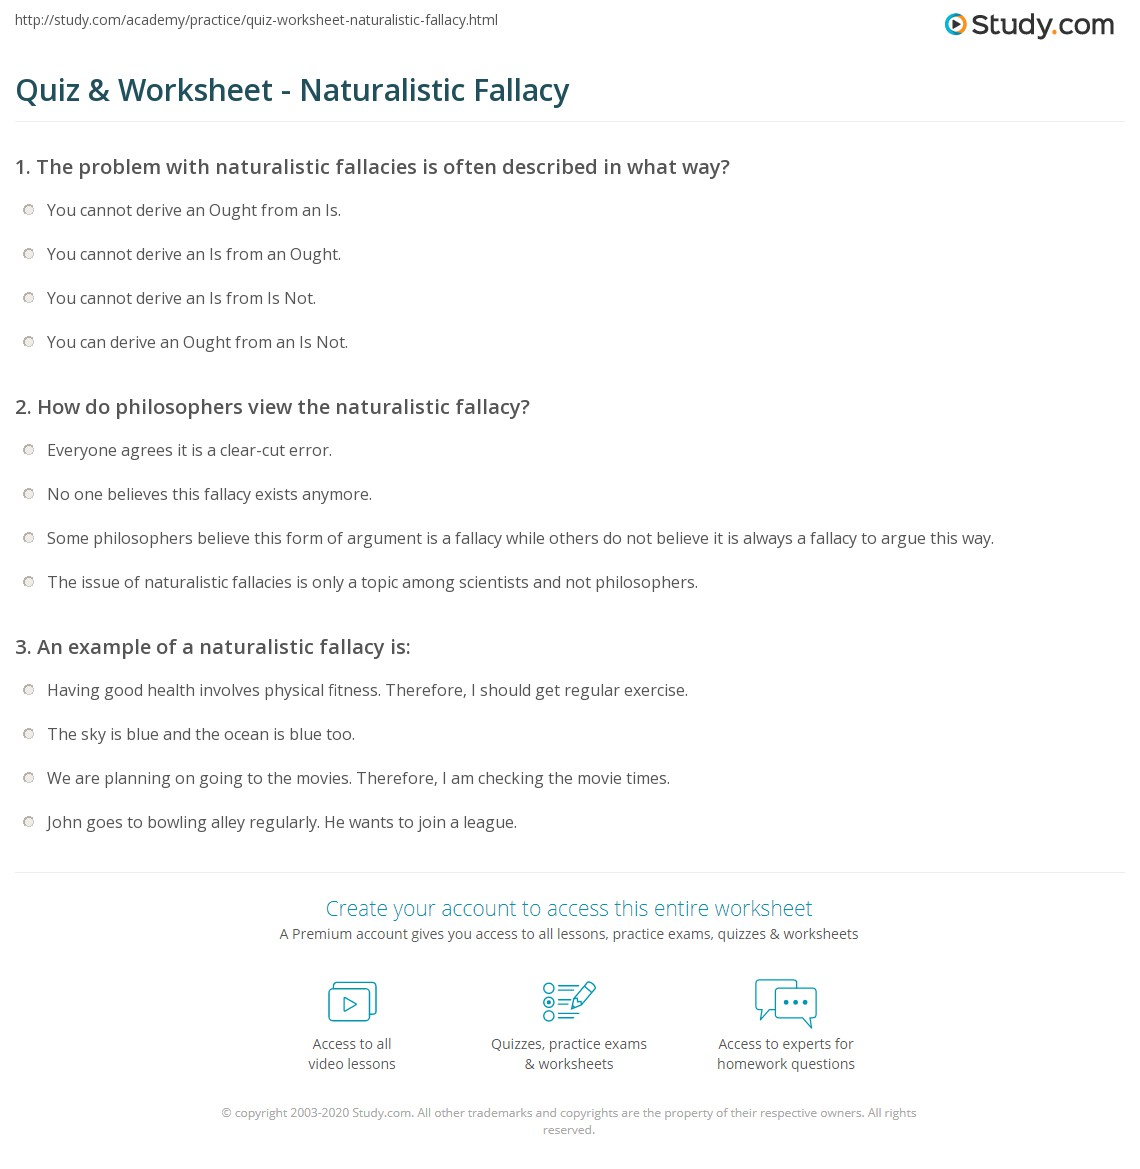 Quiz Worksheet Naturalistic Fallacy – Fallacies Worksheet